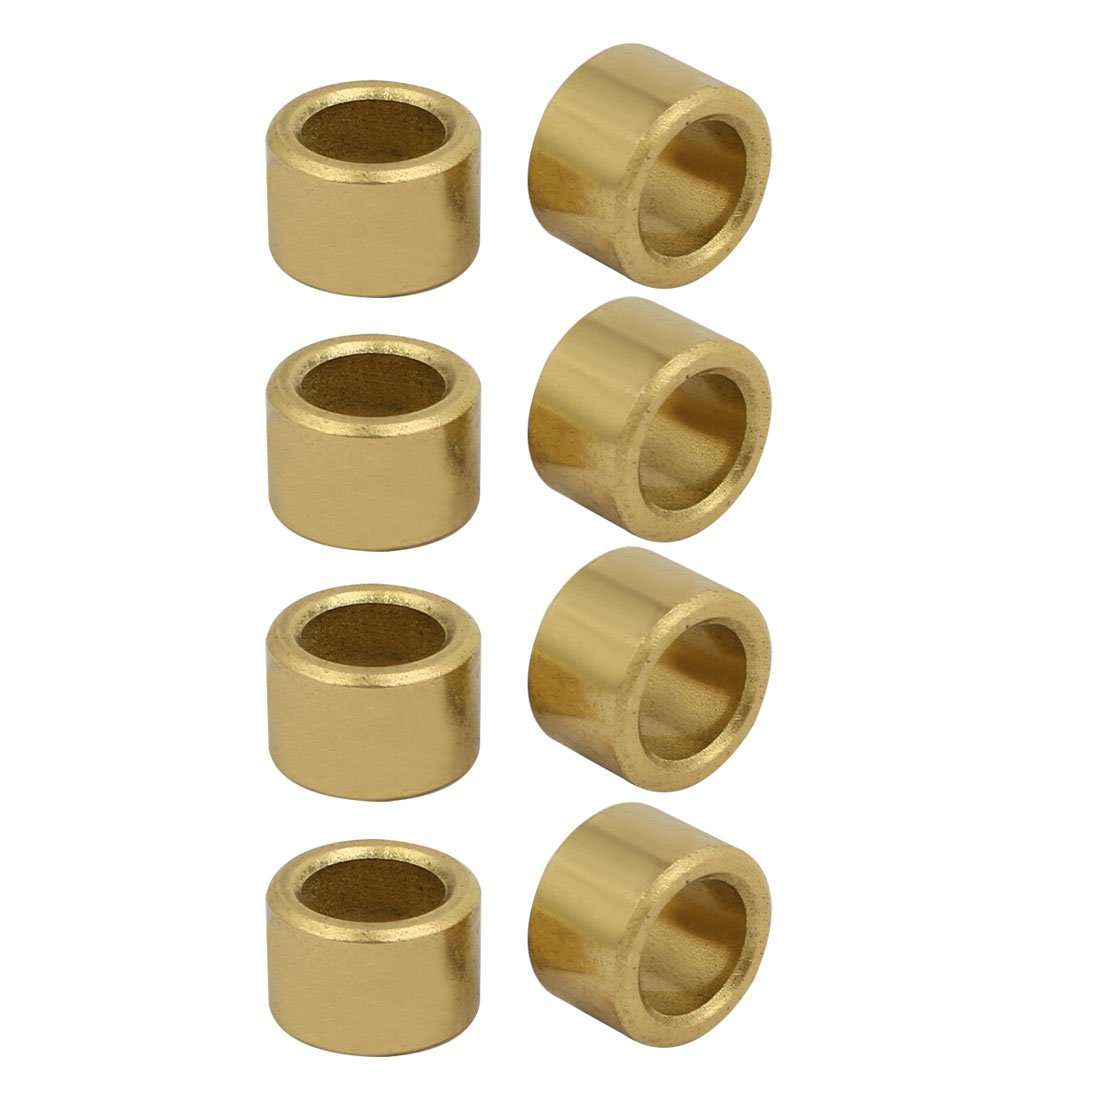 Sourcingmap 8mmx12mmx8mm Powdered Metal Bronze Sleeve Bearing Bushing Gold Tone 8pcs